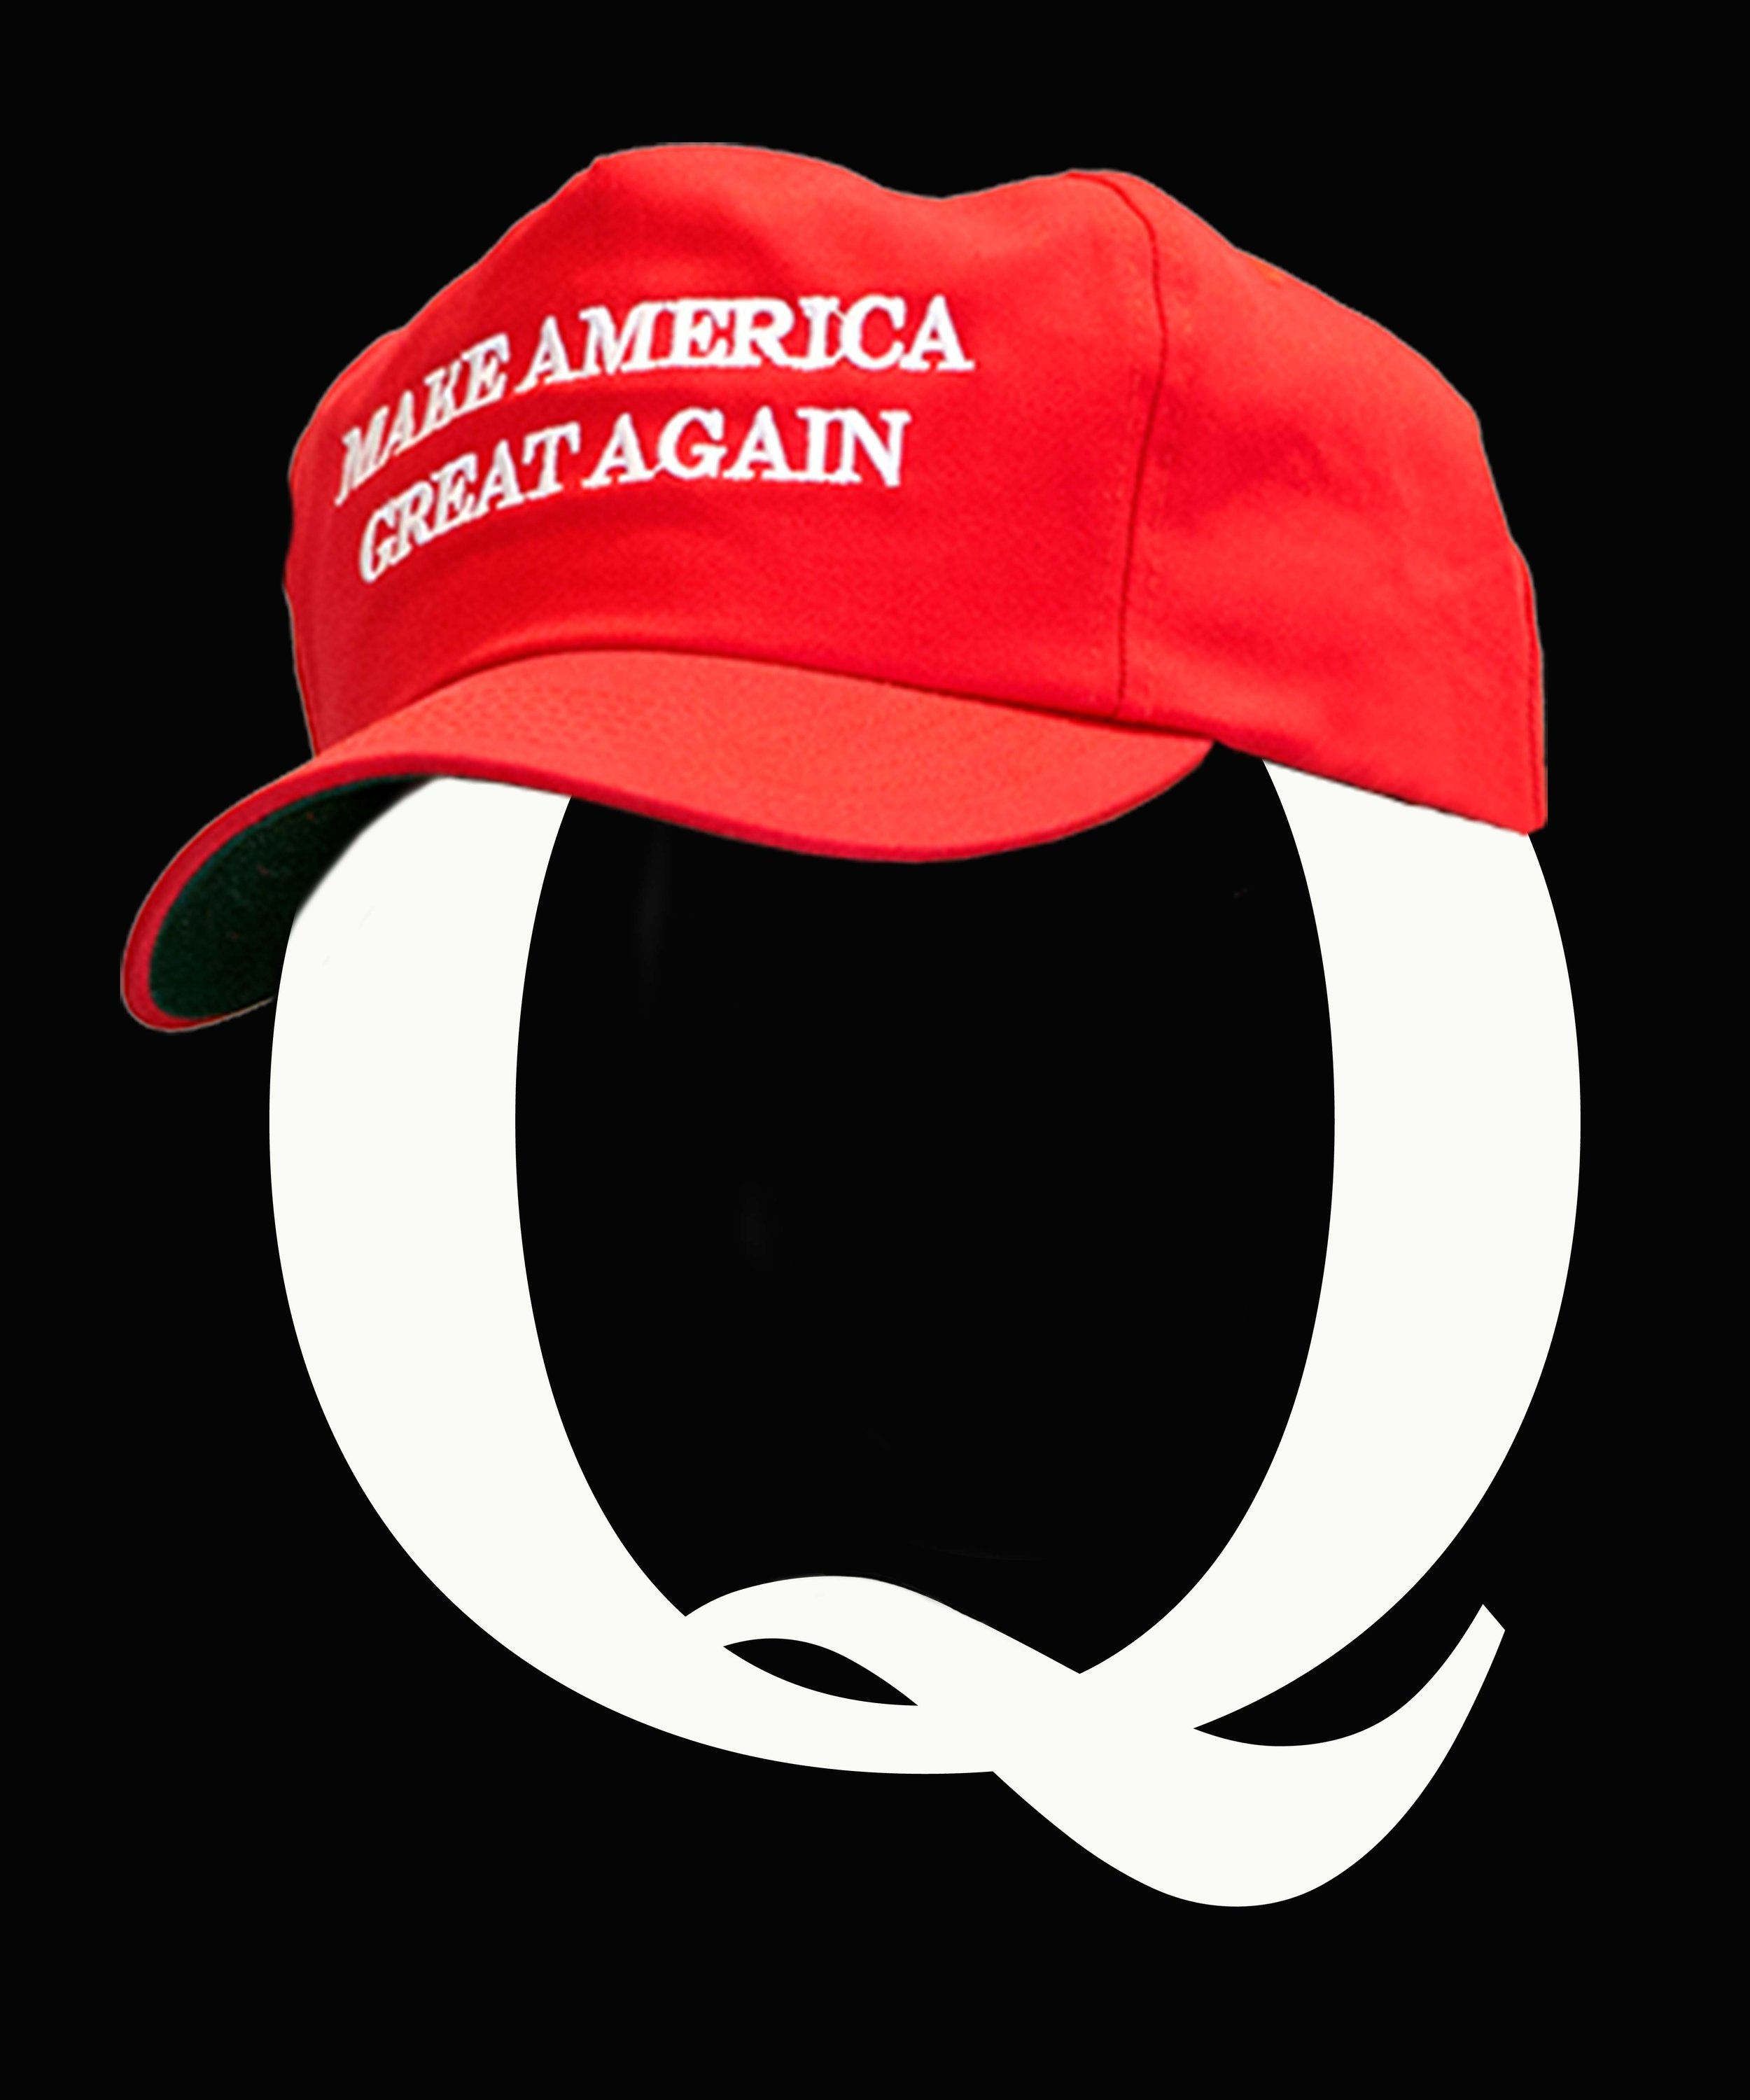 Q MAGA HAT black background.jpg